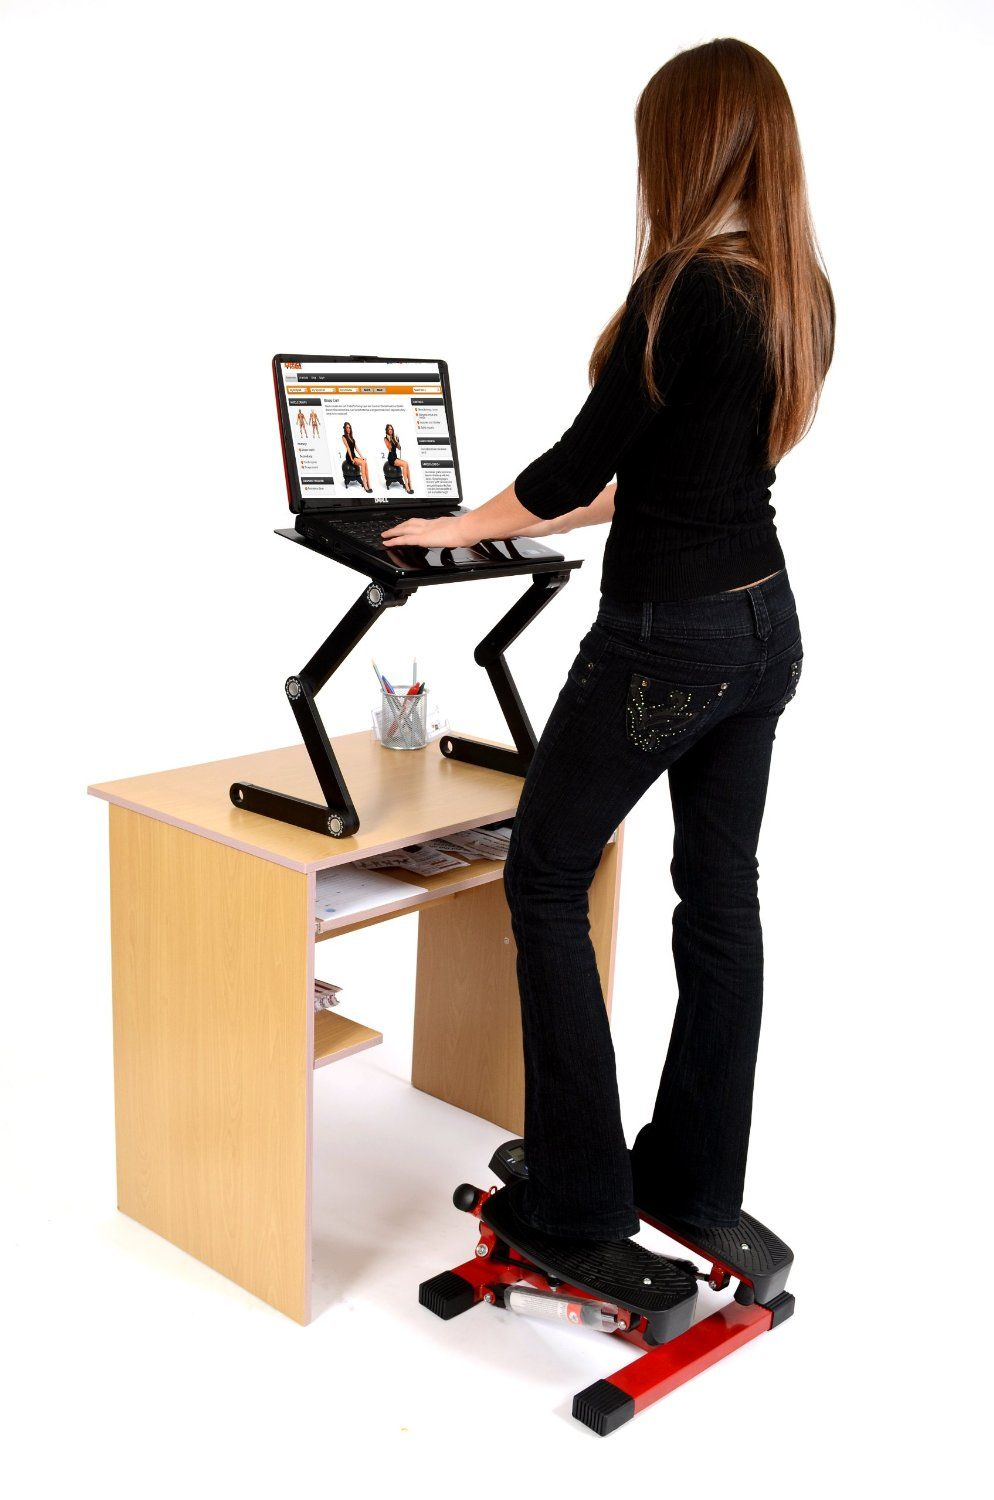 Office Fitness Twist Stepper With Bungee Cords Black/Red Mini Twist Stepper  Fitness Workout Machine: Amazon.co.uk: Sports U0026 Outdoors